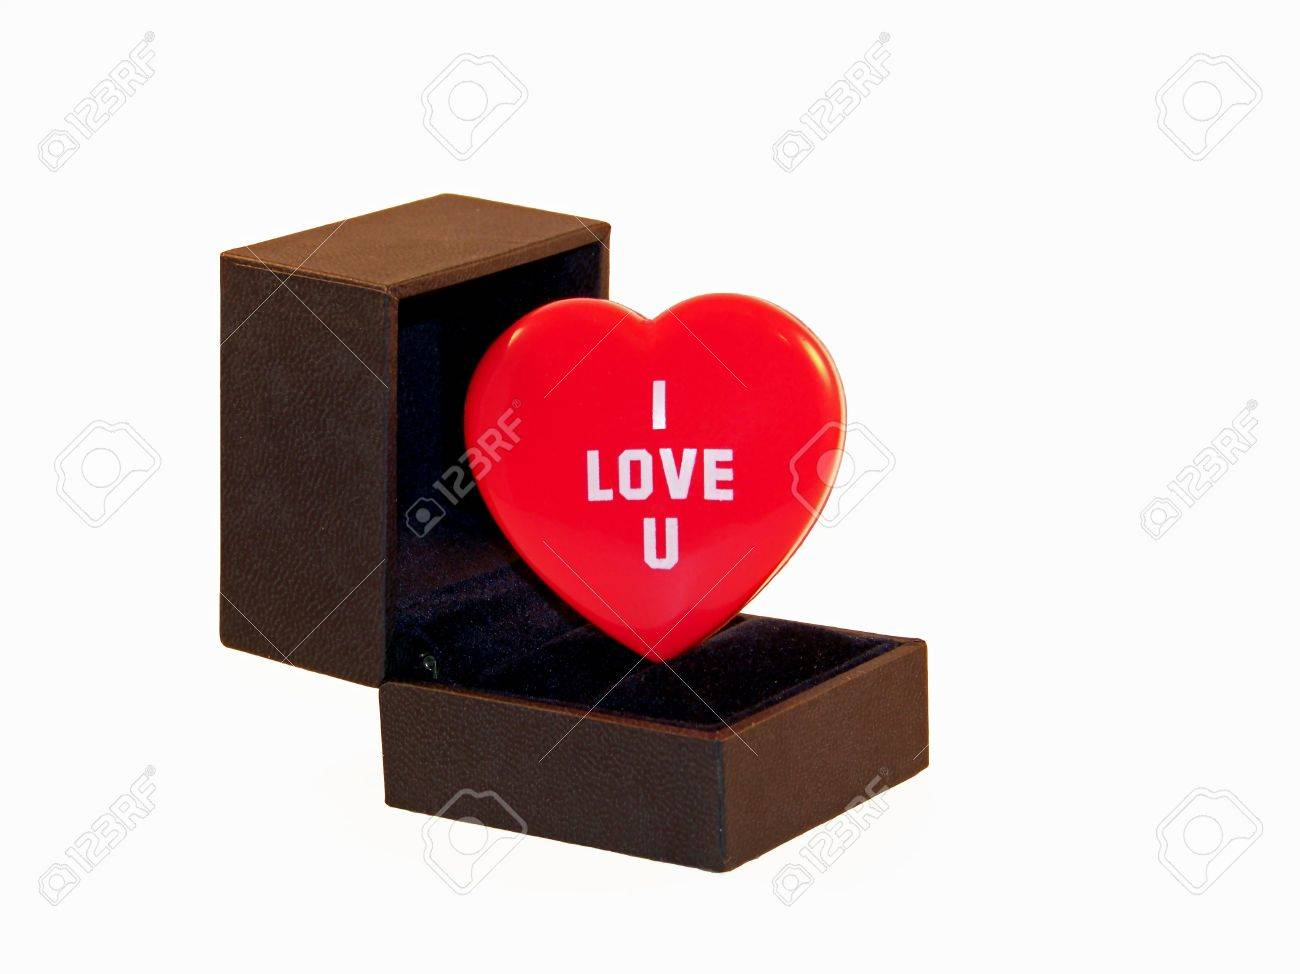 A Heart With I Love U In Side An Engagement Ring Box Stock Photo